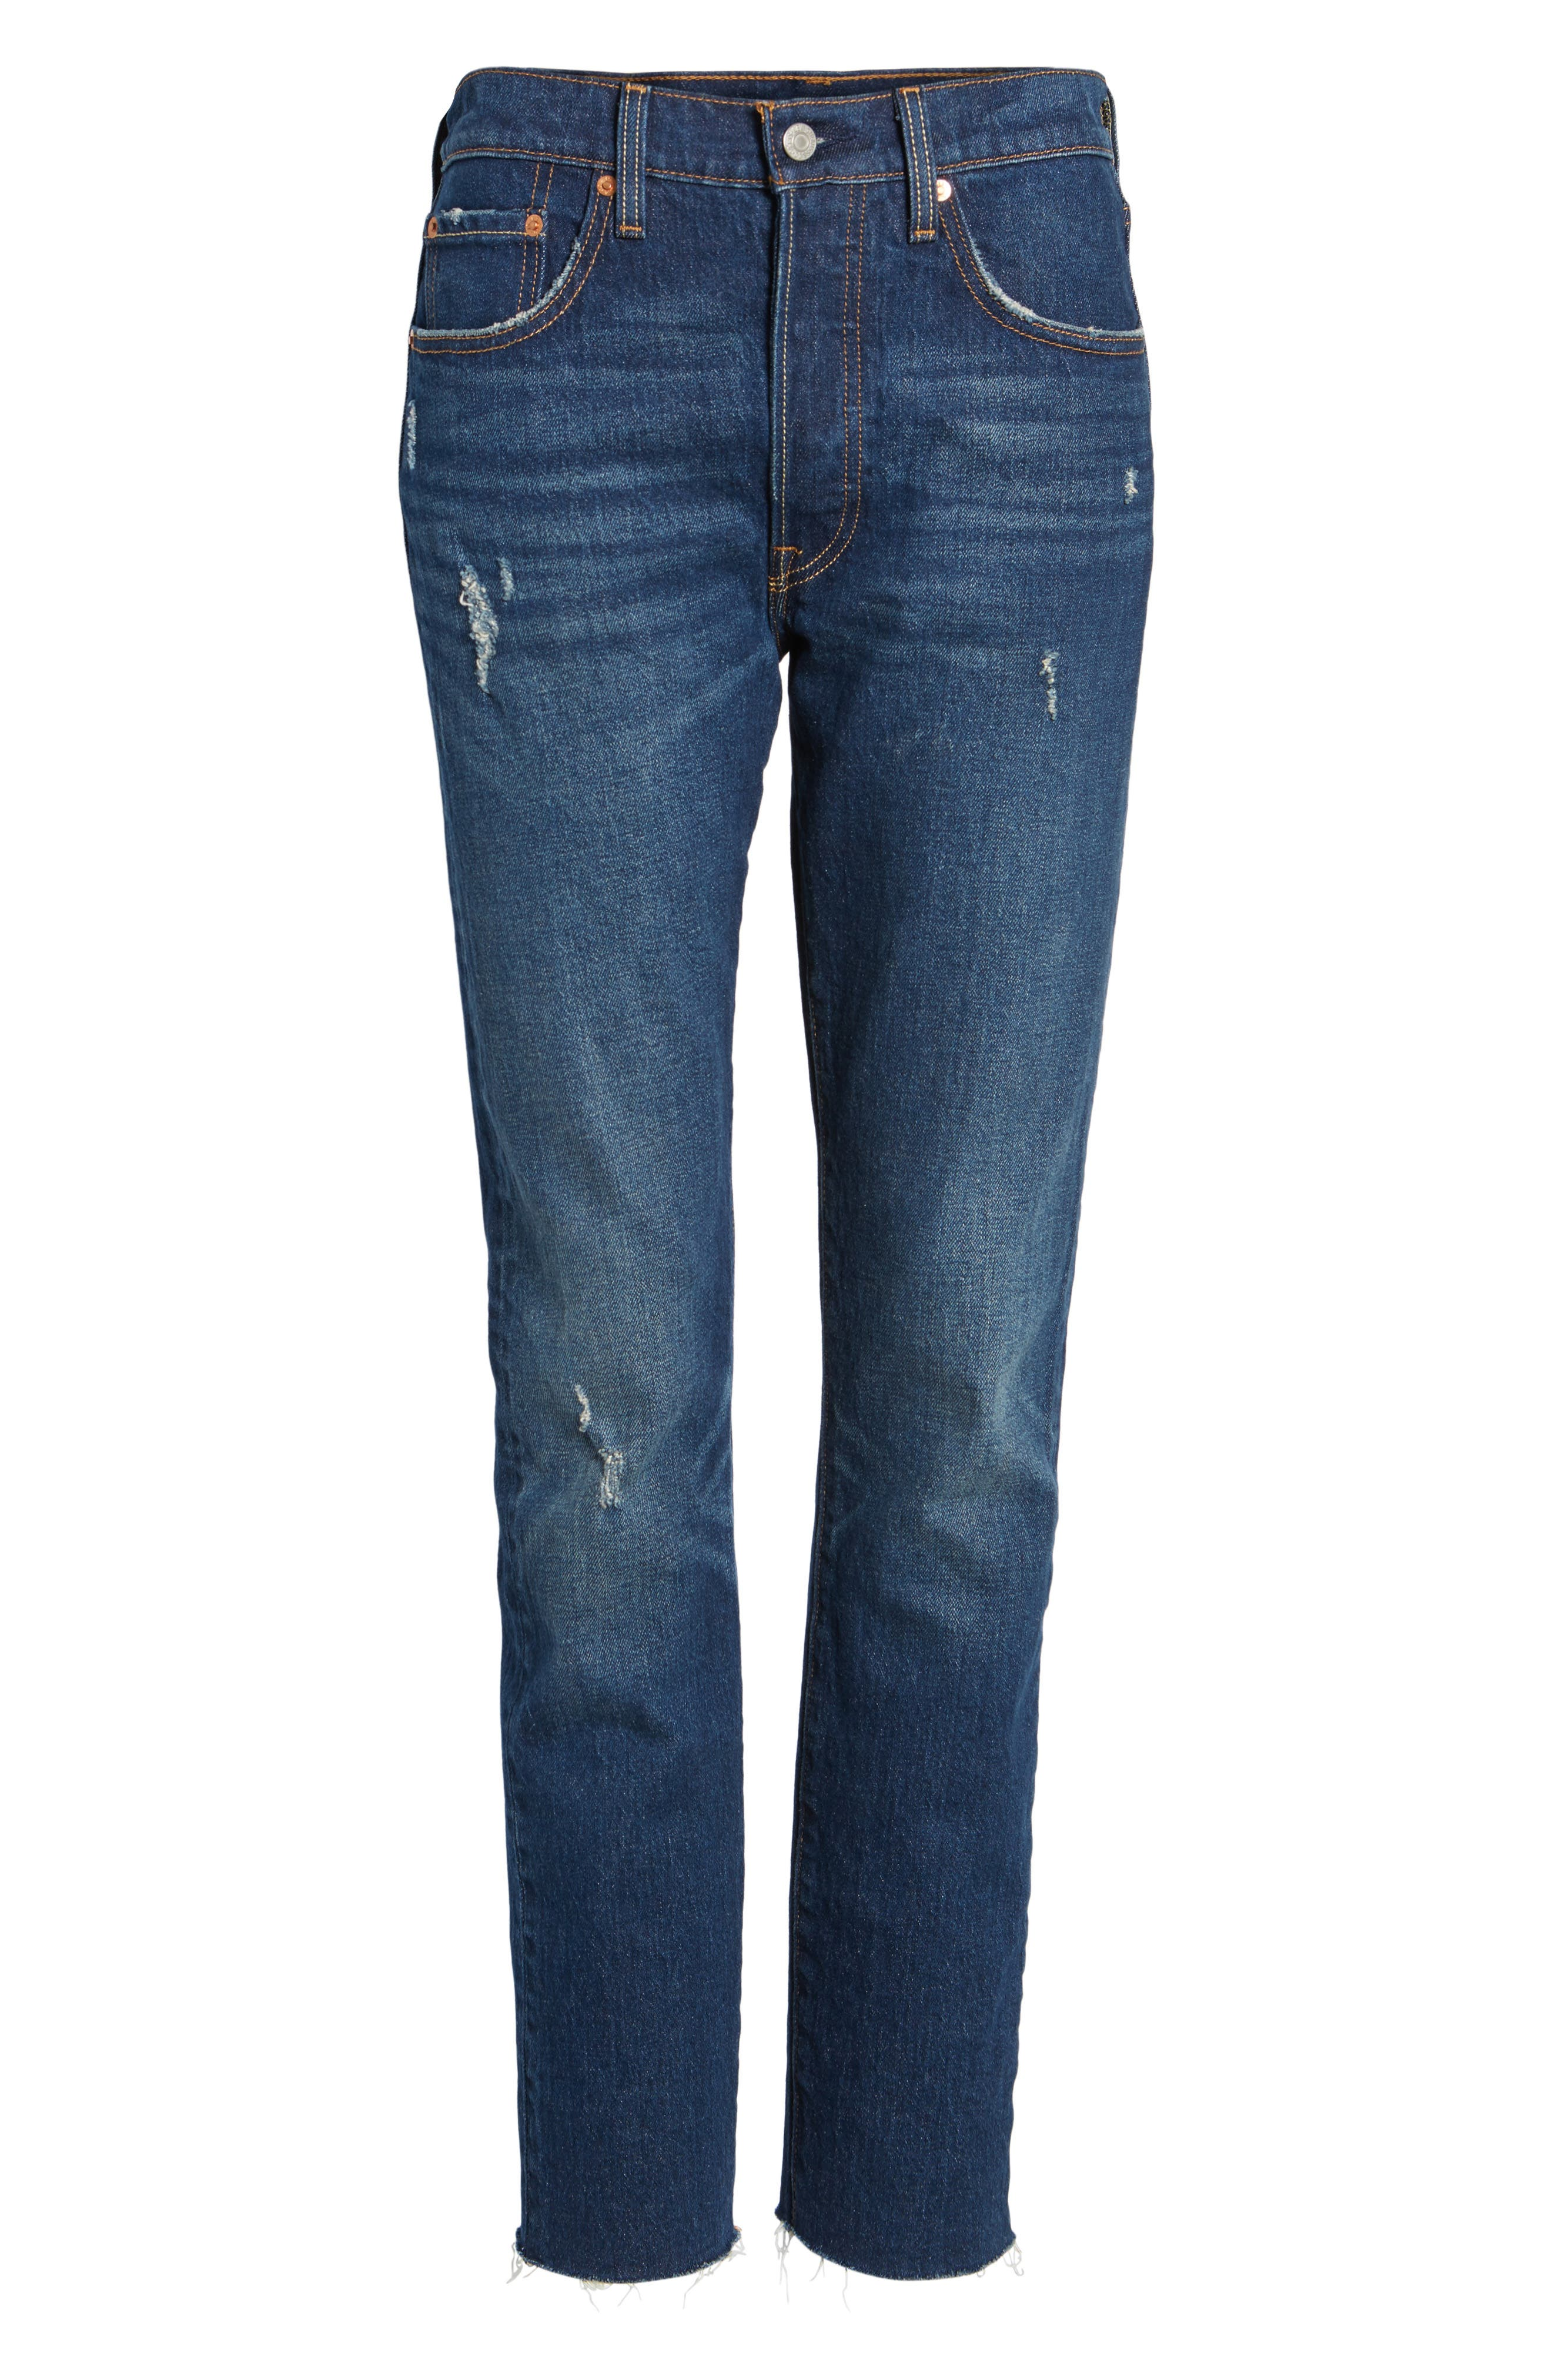 Levis<sup>®</sup> 501 Raw Hem Skinny Jeans,                             Alternate thumbnail 9, color,                             Song For Forever